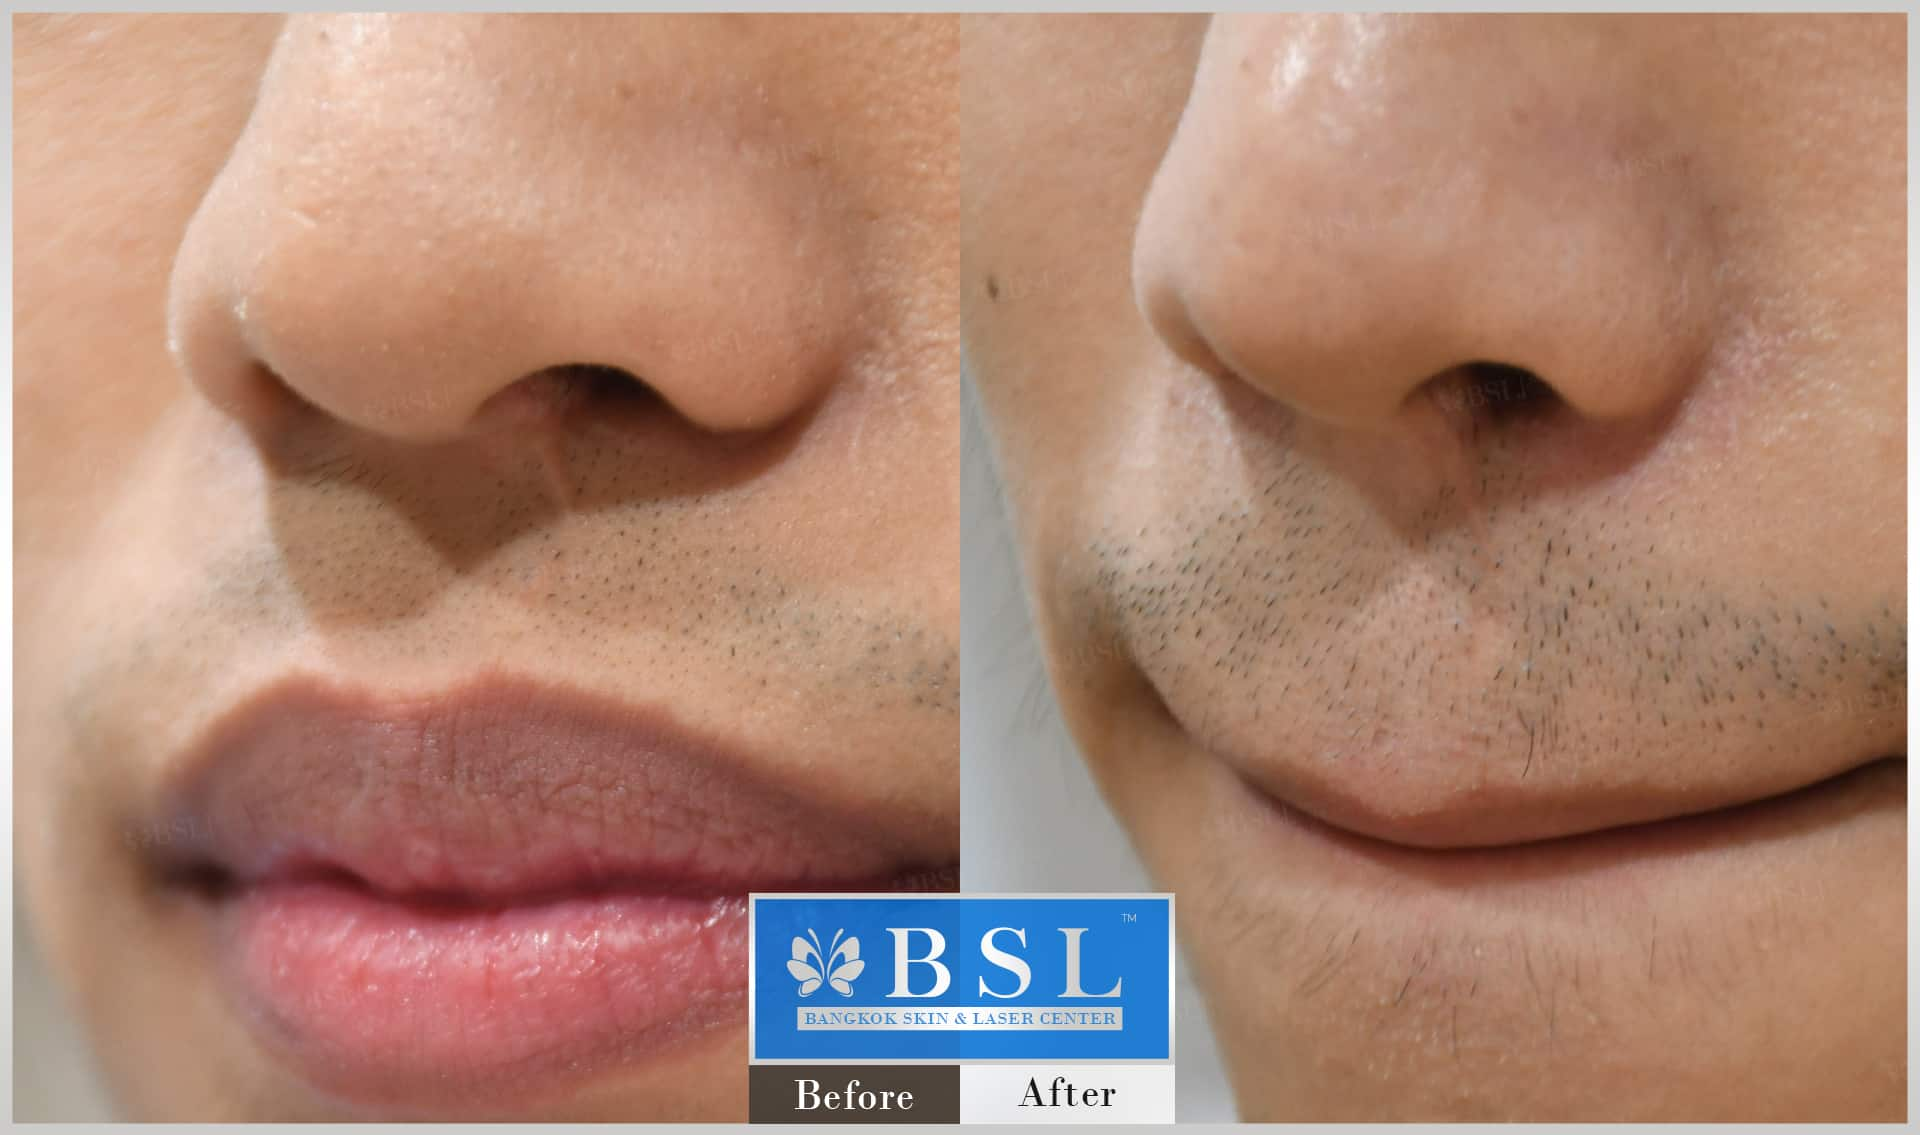 before-after-results-scar-treatment-011